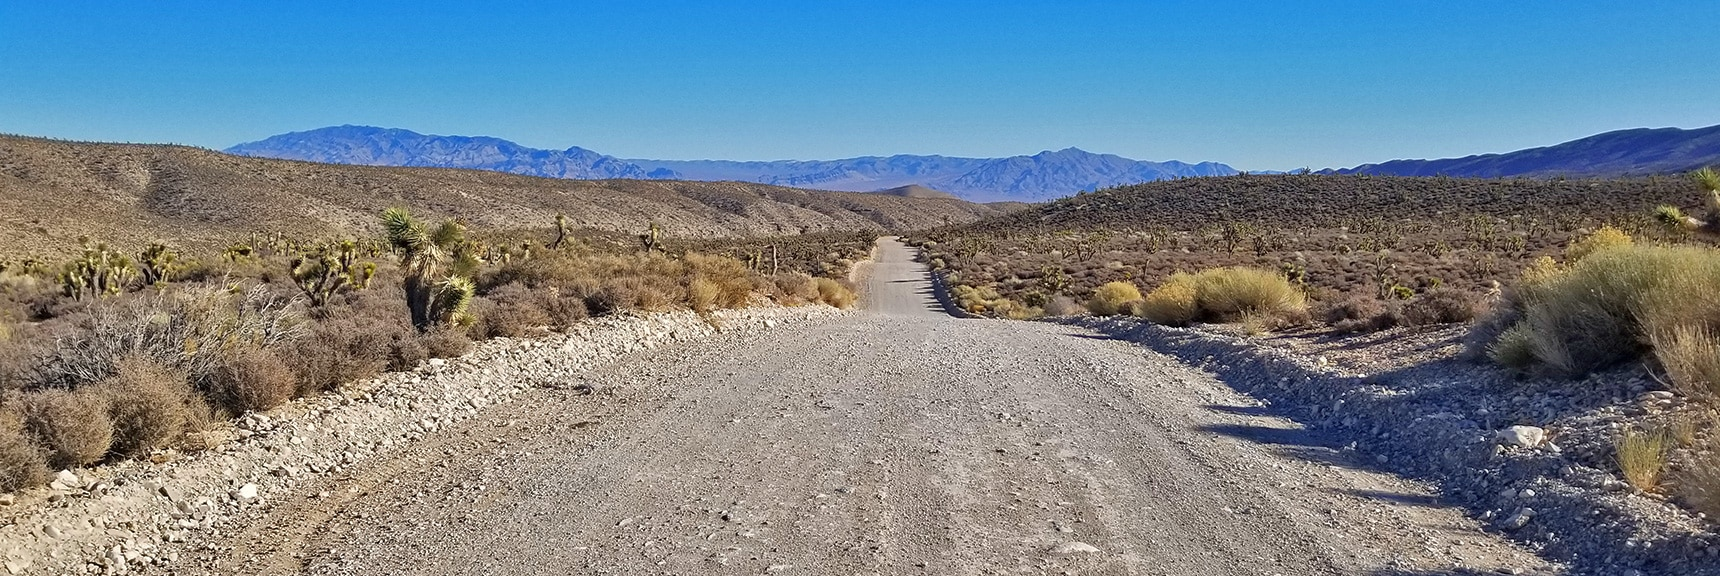 View Back Down Lower Harris Springs Rd Toward Sheep Range and Gass Peak   Harris Springs Rd, Harris Mountain Rd   Spring Mountains Wilderness, Nevada